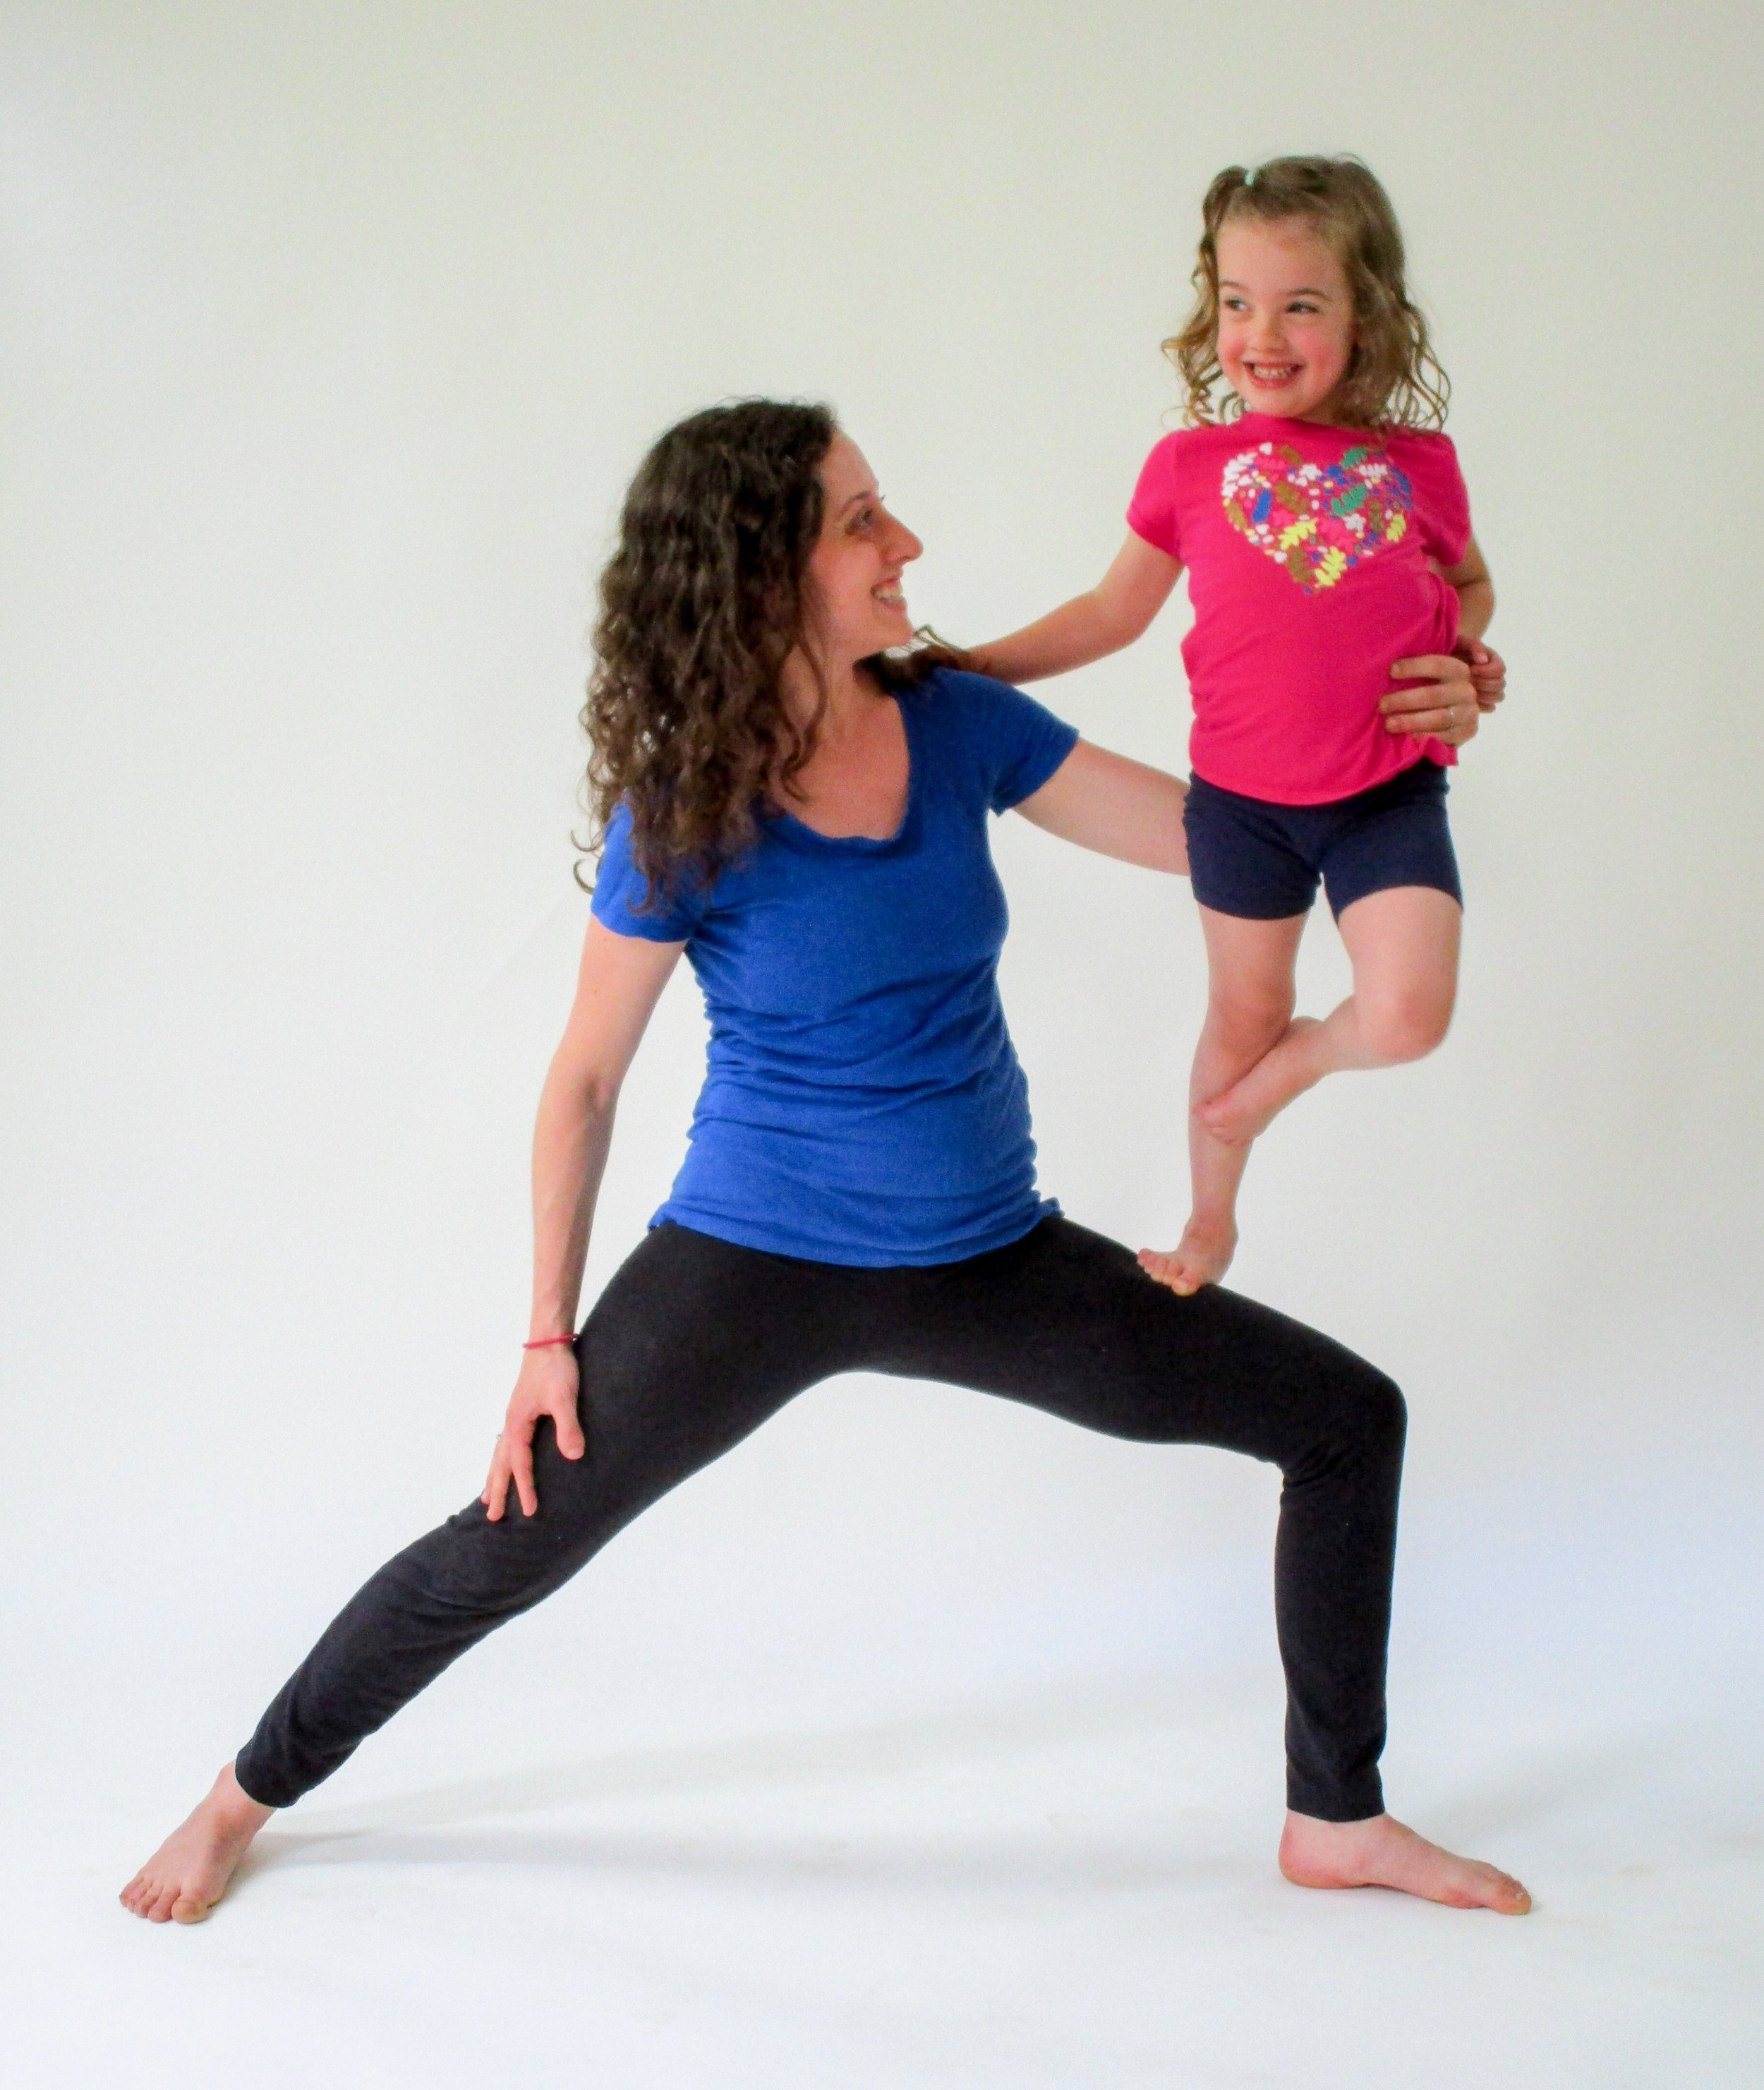 Kids Yoga(ages 4-6) - This summer kids yoga class is best suited for children ages 4-6. We invite children to practice pranayama (awareness of breath) and asana (yoga postures) using imaginative play, songs, and story telling. Children will be led through a yoga sequence designed to enhance their self awareness and regulation as well as gain strength, flexibility and balance of the body and mind.Sarah is a mother to three young children and an early childhood teacher. She completed her 200 hour yoga teacher training in 2011 and has been incorporating mindfulness and yoga in her classroom work since.